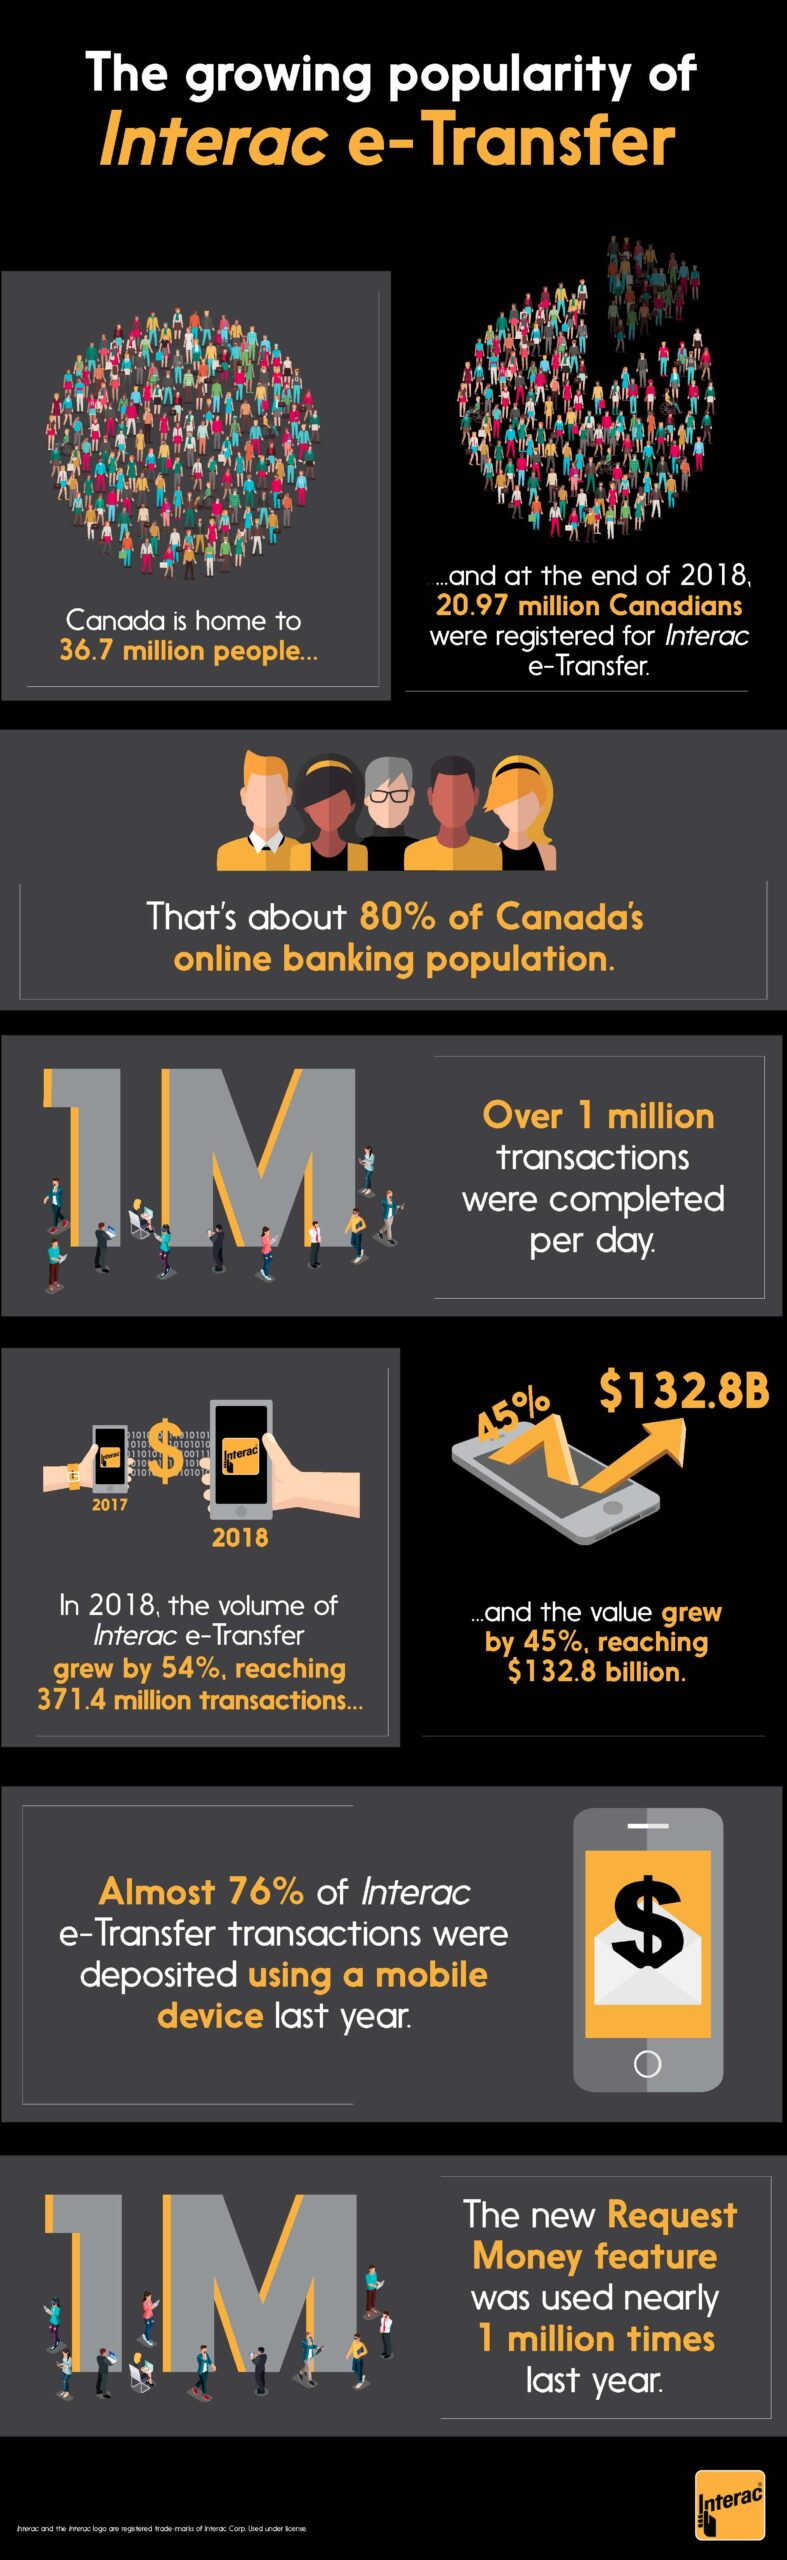 """The growing popularity of Interac e-Transfer  Canada is home to 36.7 million people…  …and at the end of 2018, 20.97 million Canadians were registered for Interac e-Transfer.  That's about 80% of Canada's online banking population.  Over 1 million transactions were completed per day. (Note: Does the 1M graphic here work in French?)  In 2018, the volume of Interac e-Transfer grew by 54%, reaching 371.4 million transactions…  …and the value grew by 45%, reaching $132.8 billion. (Note: Does the """"45%"""" or $132.8B"""" in the graphic need to be changed?)  Almost 76% of Interac e-Transfer transactions were deposited using a mobile device last year.  The new Request Money feature was used nearly 1 million times last year."""